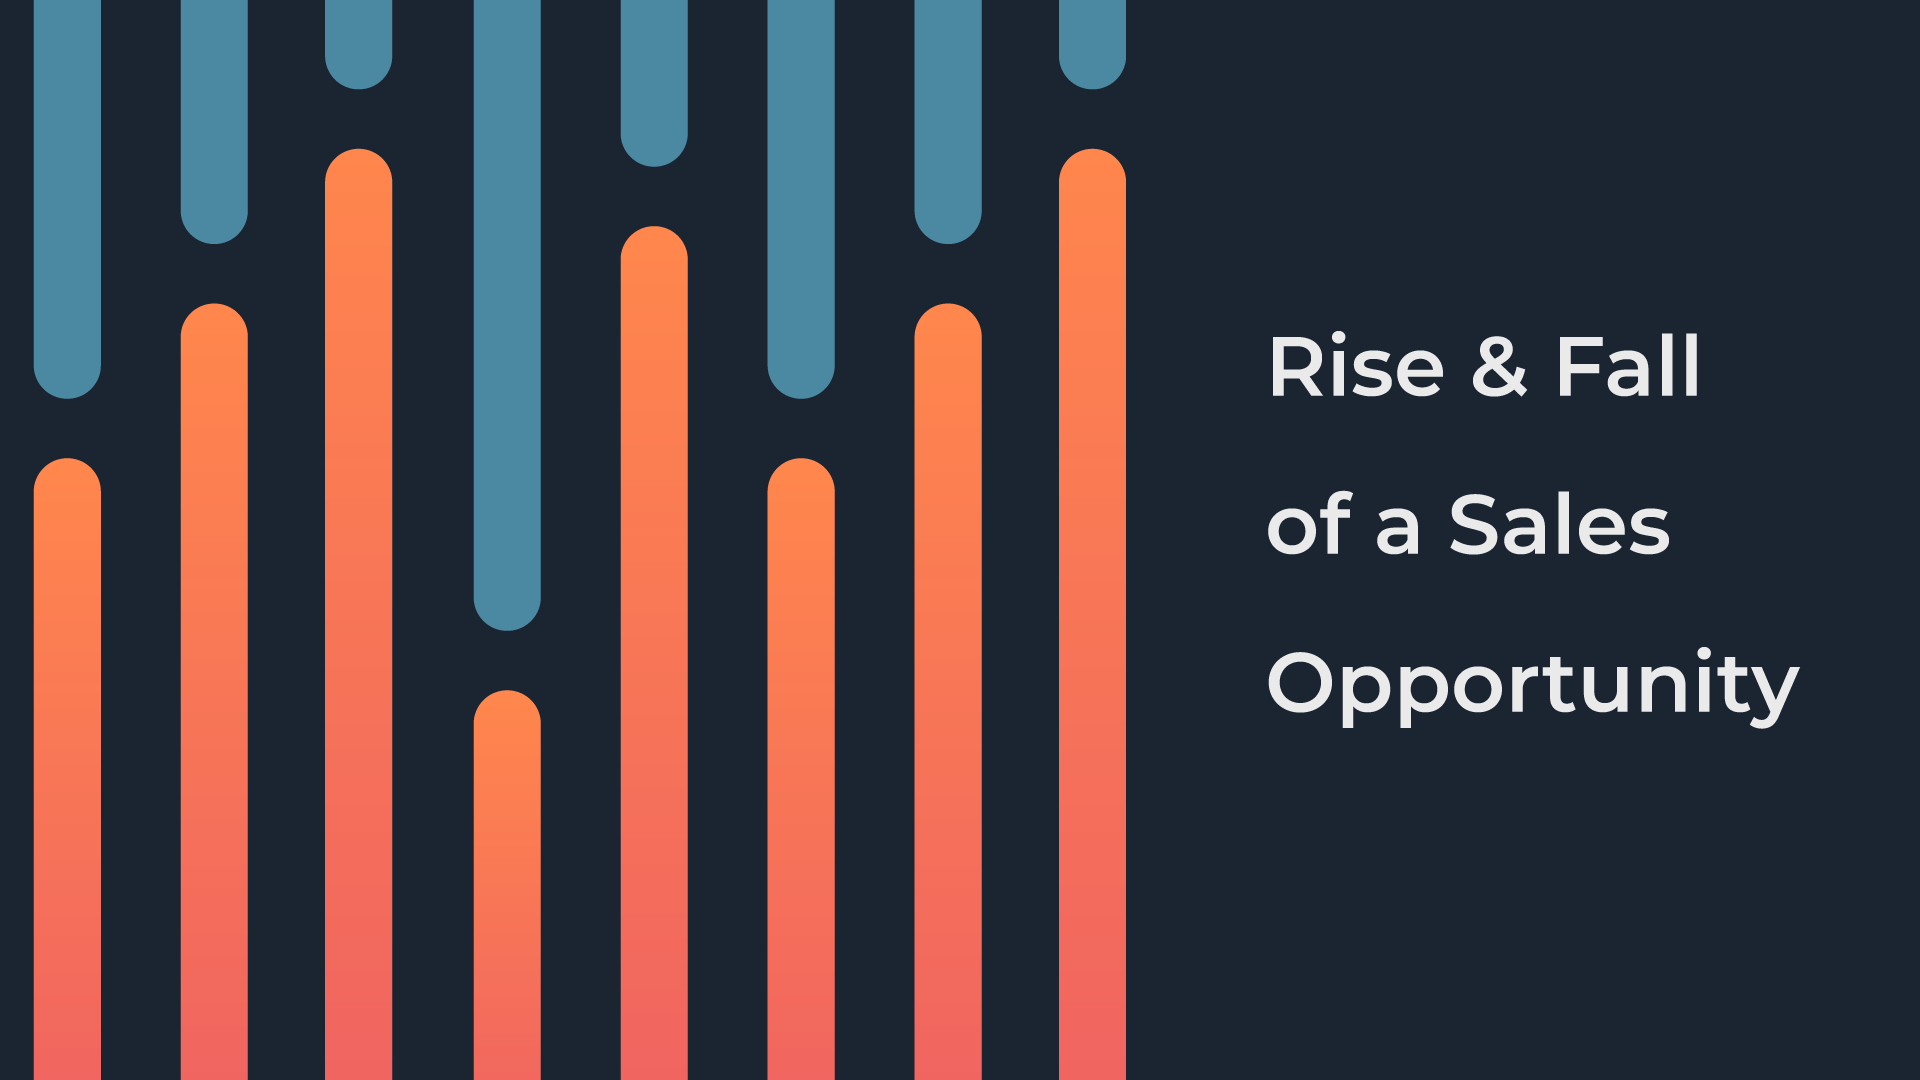 Rise & Fall of a Sales Opportunity